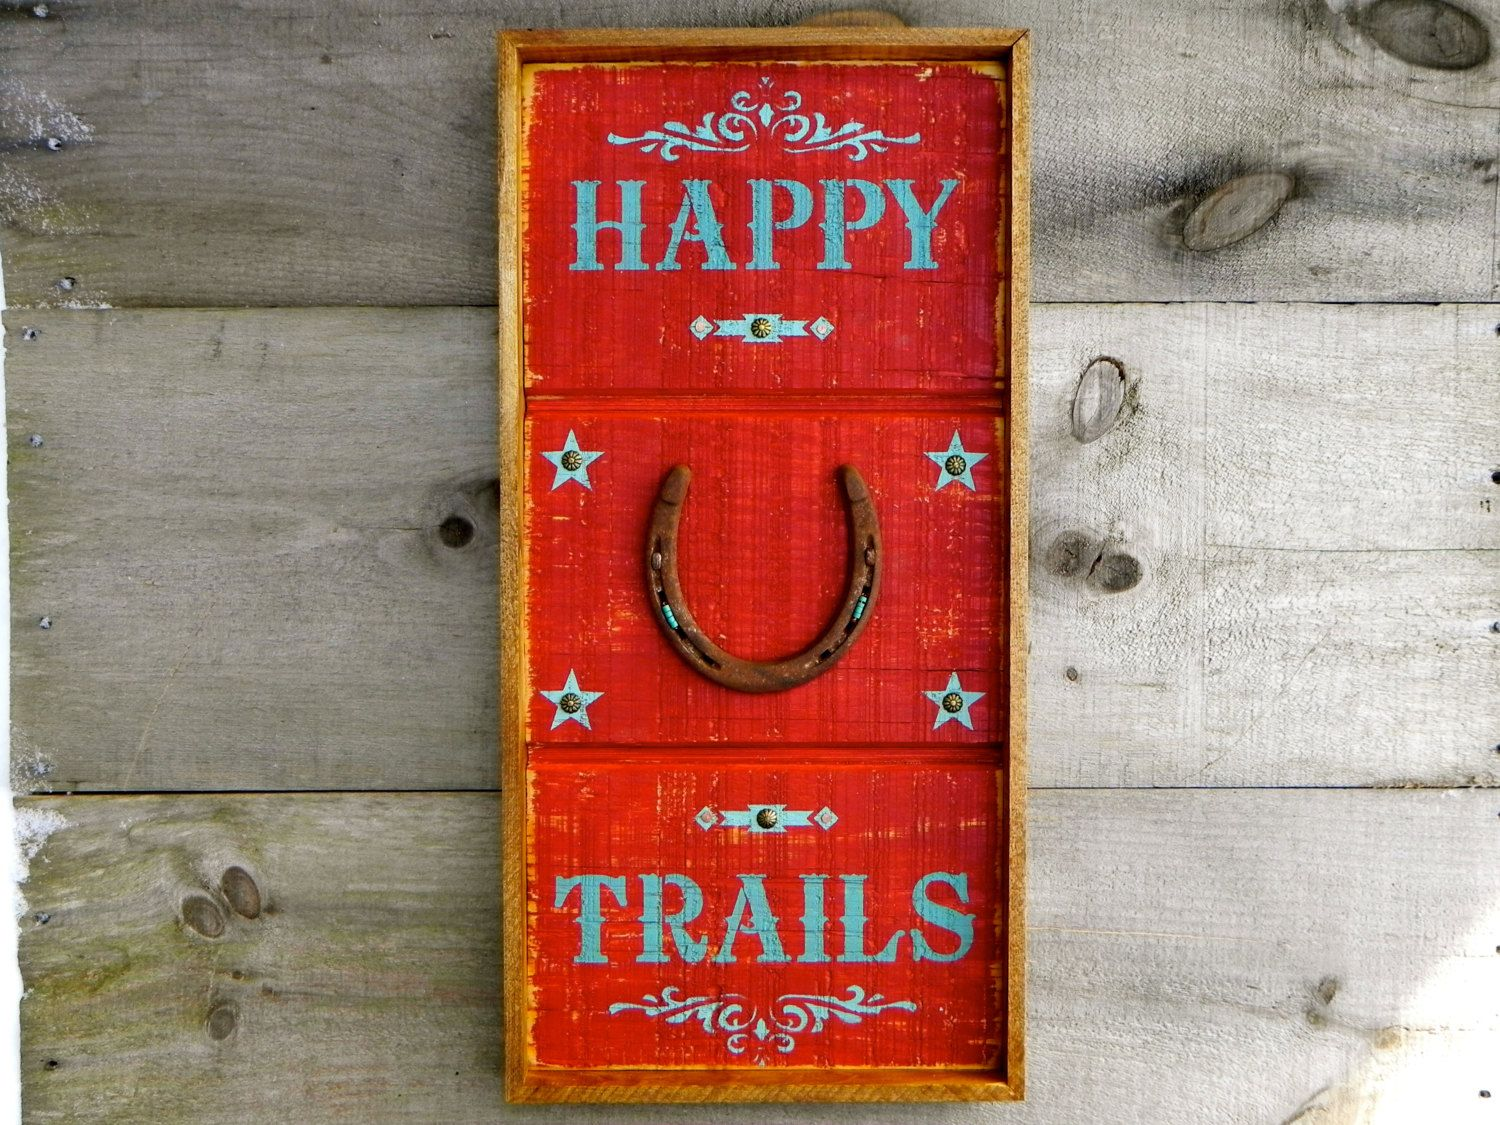 Western Signs and Home Decor, Wood Signs, Wall Decor, Rustic Country Sign, Happy Trails, Horse Decor, Horse Shoe, Turquoise, Framed Wall Art by CrowBarDsigns on Etsy https://www.etsy.com/listing/177878337/western-signs-and-home-decor-wood-signs